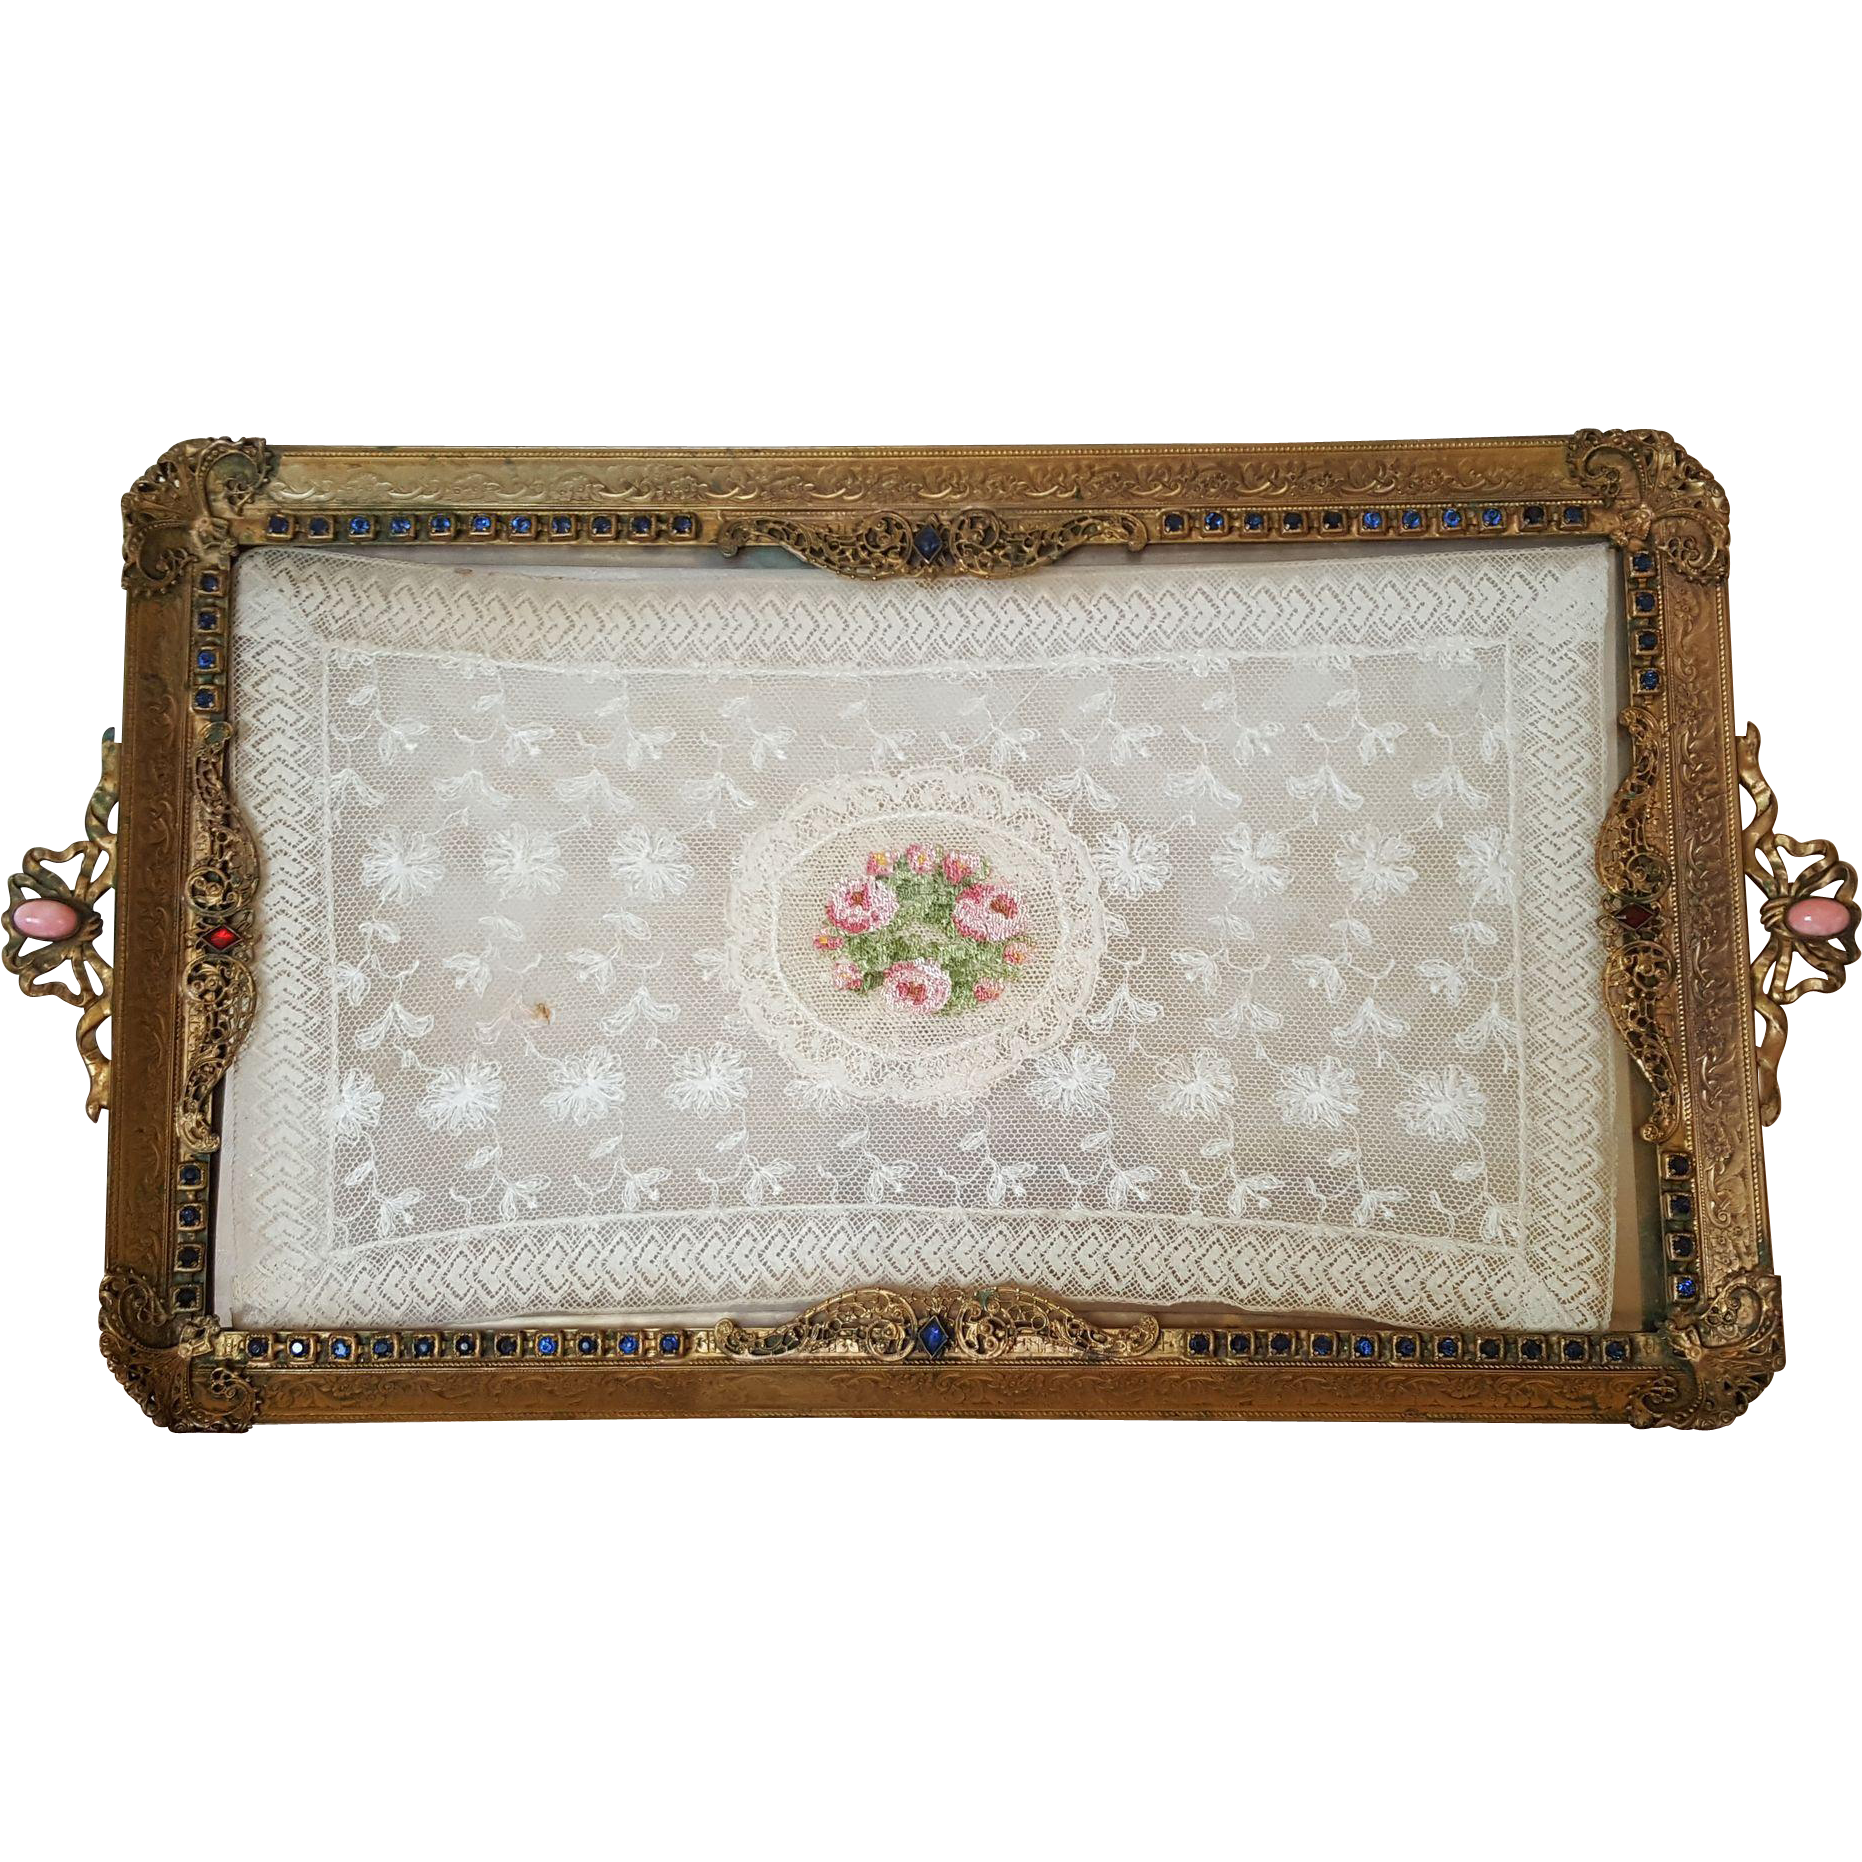 Antique vanity tray with lace insert - Antique Jeweled Gold Ormolu Vanity Tray W Lace Insert From